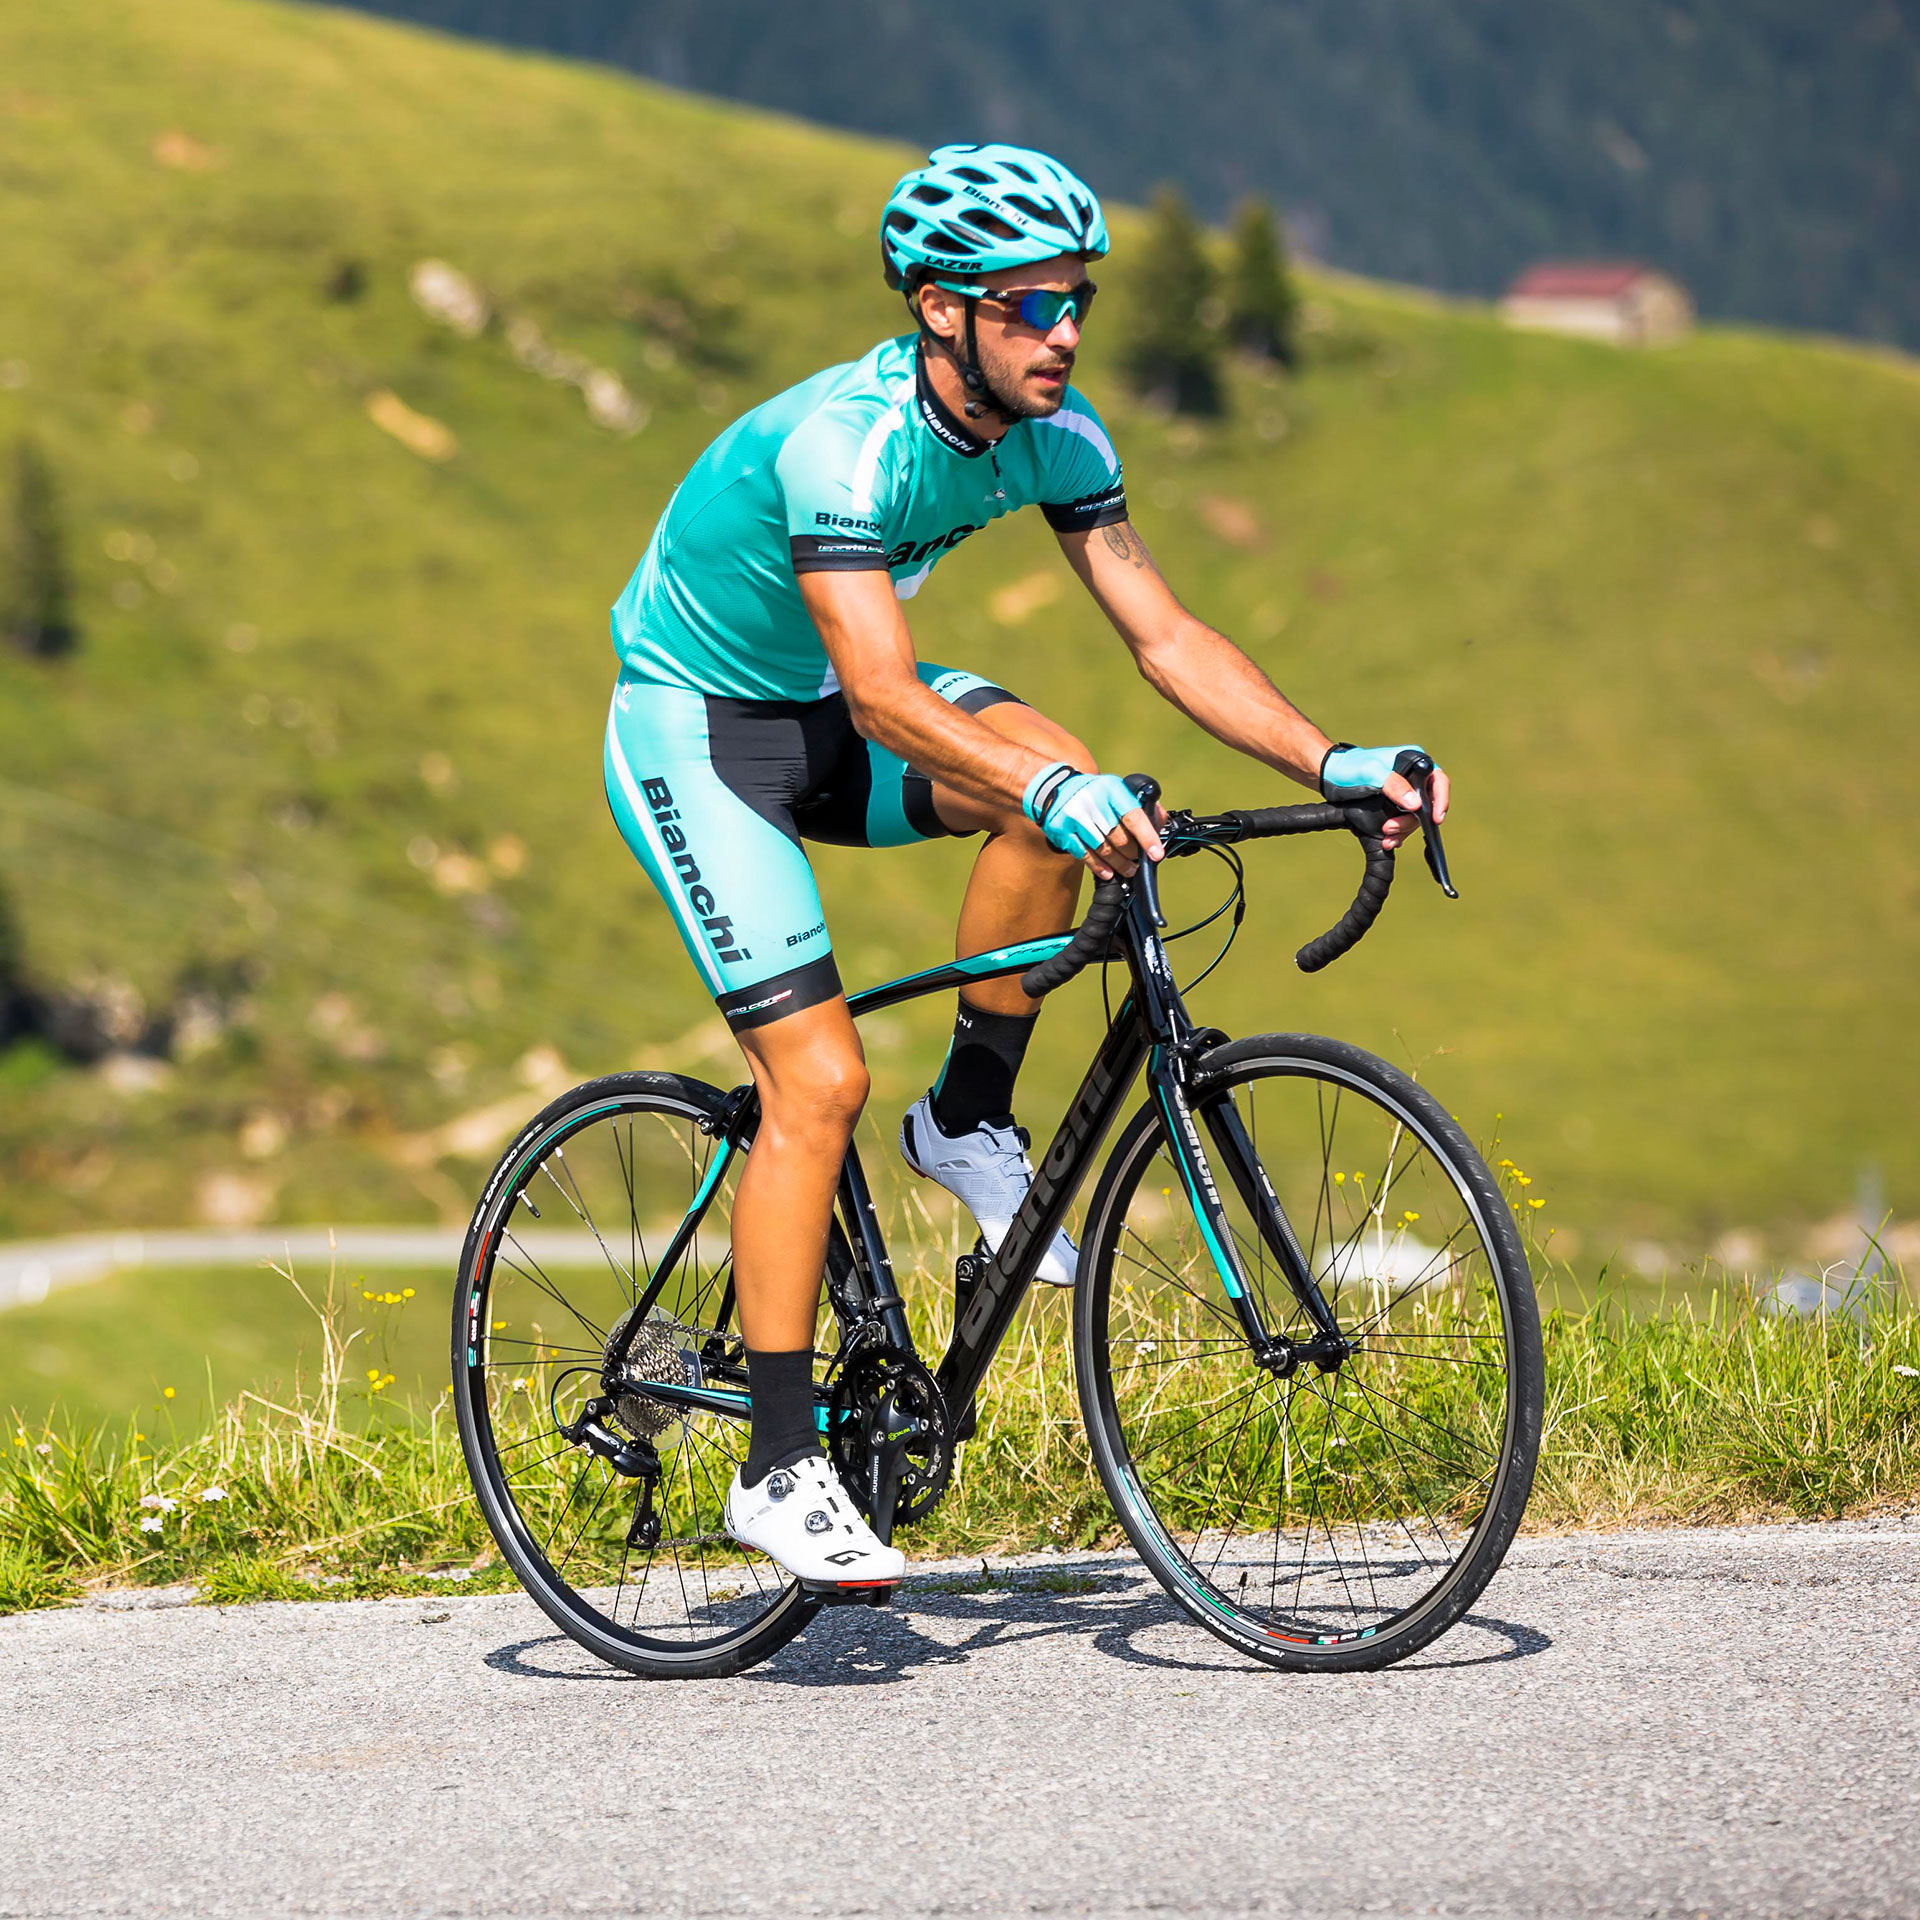 Bianchi Via Nirone Road Bike